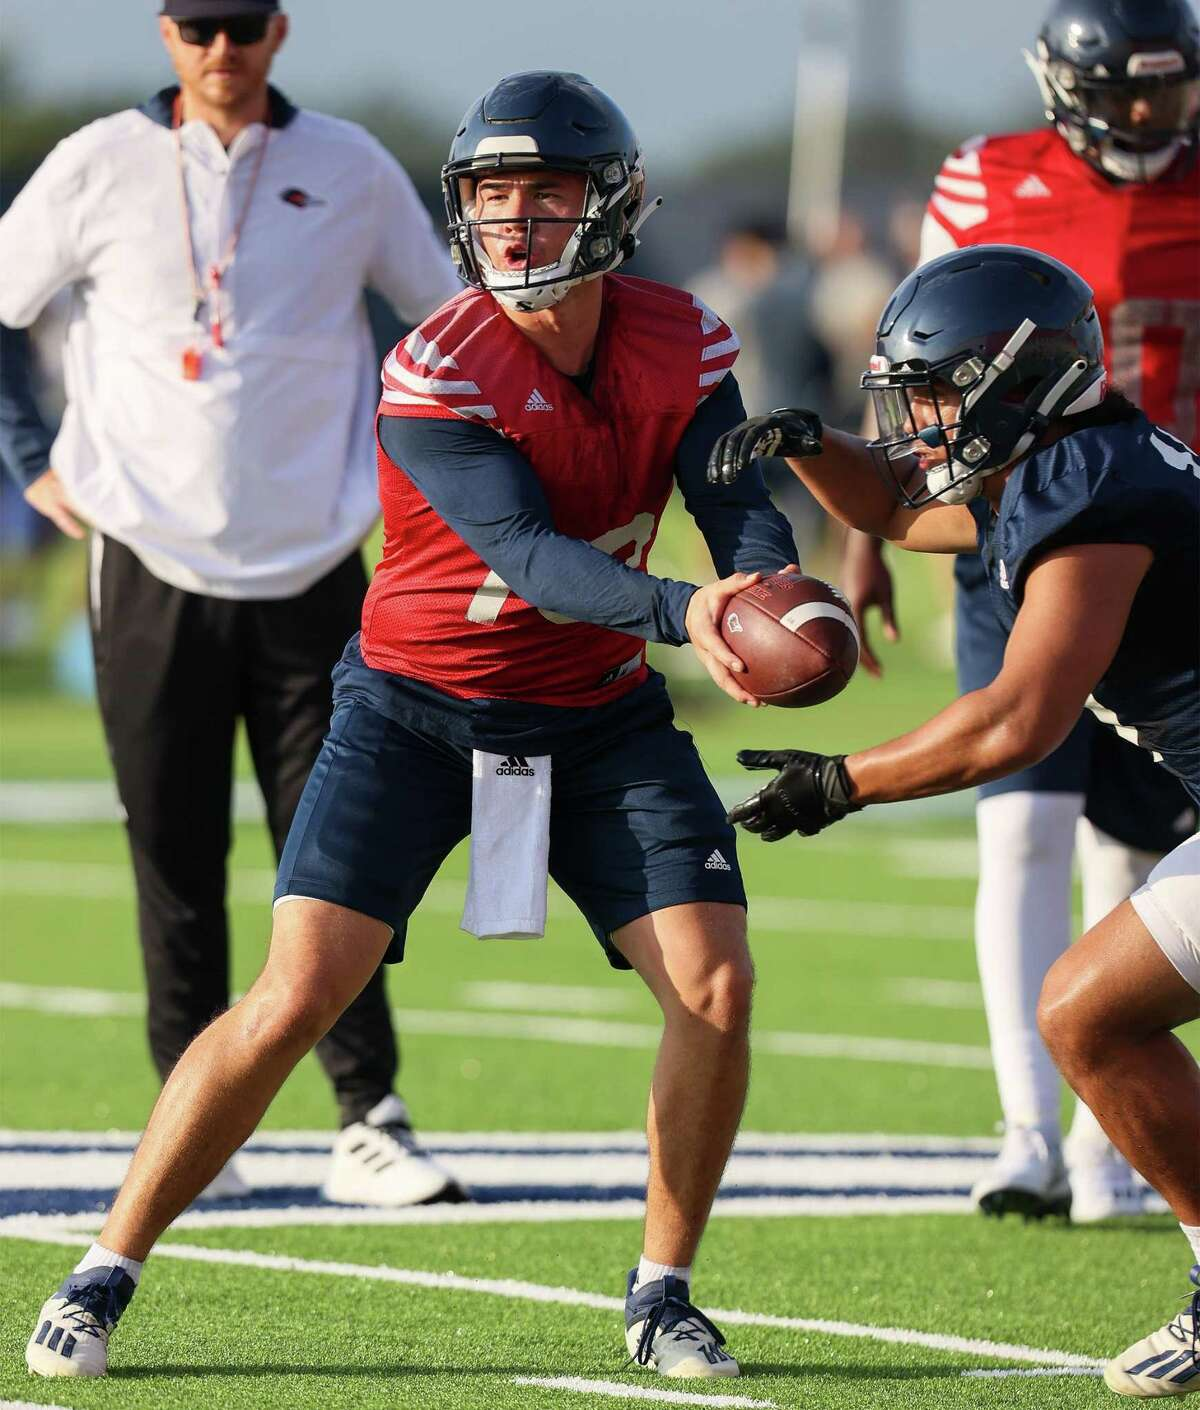 UTSA quarterback Josh Adkins prepares to hand off to running back Kaedric Cobbs during their first football practice of fall camp at the practice fields of the RACE facility on campus on Friday, Aug. 6, 2021.